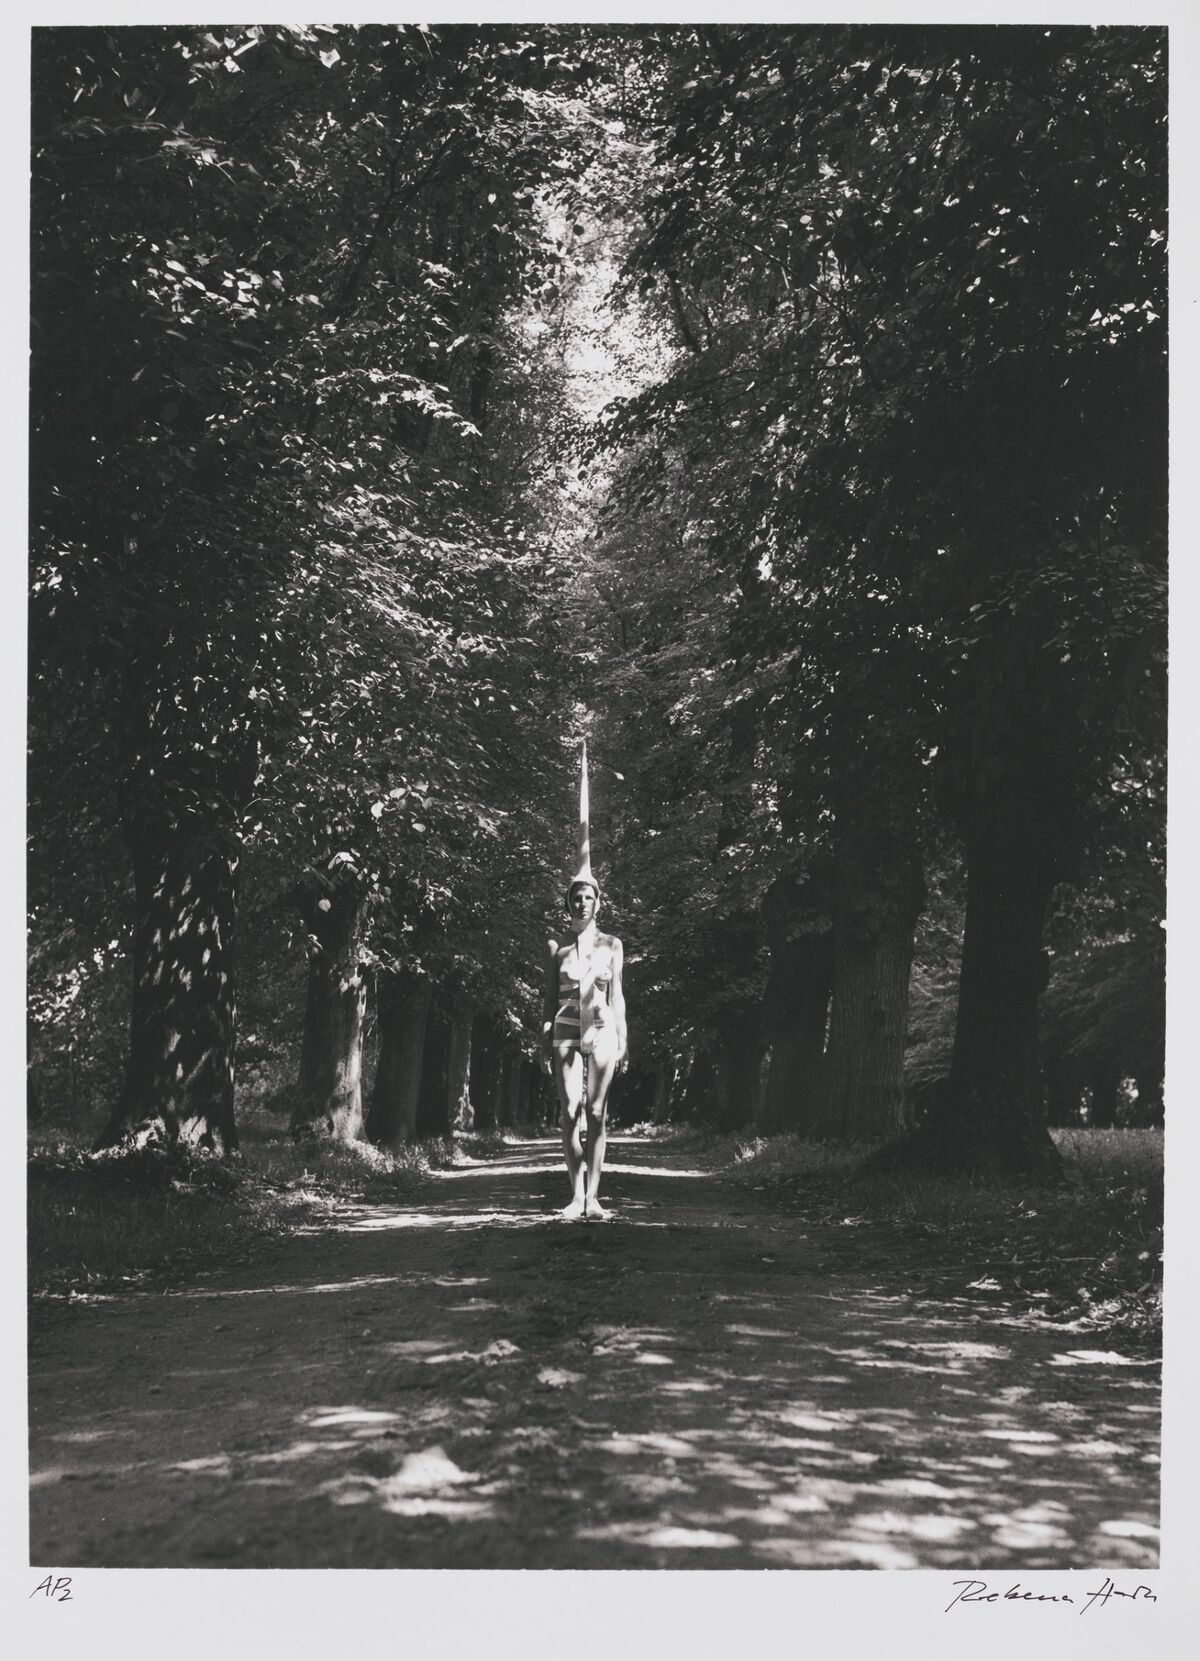 Rebecca Horn, Unicorn, 1970-2. © Rebecca Horn / Artists Rights Society (ARS), NY / VG Bild-Kunst, Bonn. Courtesy of Harvard Art Museums/Busch-Reisinger Museum, gift of the artist.